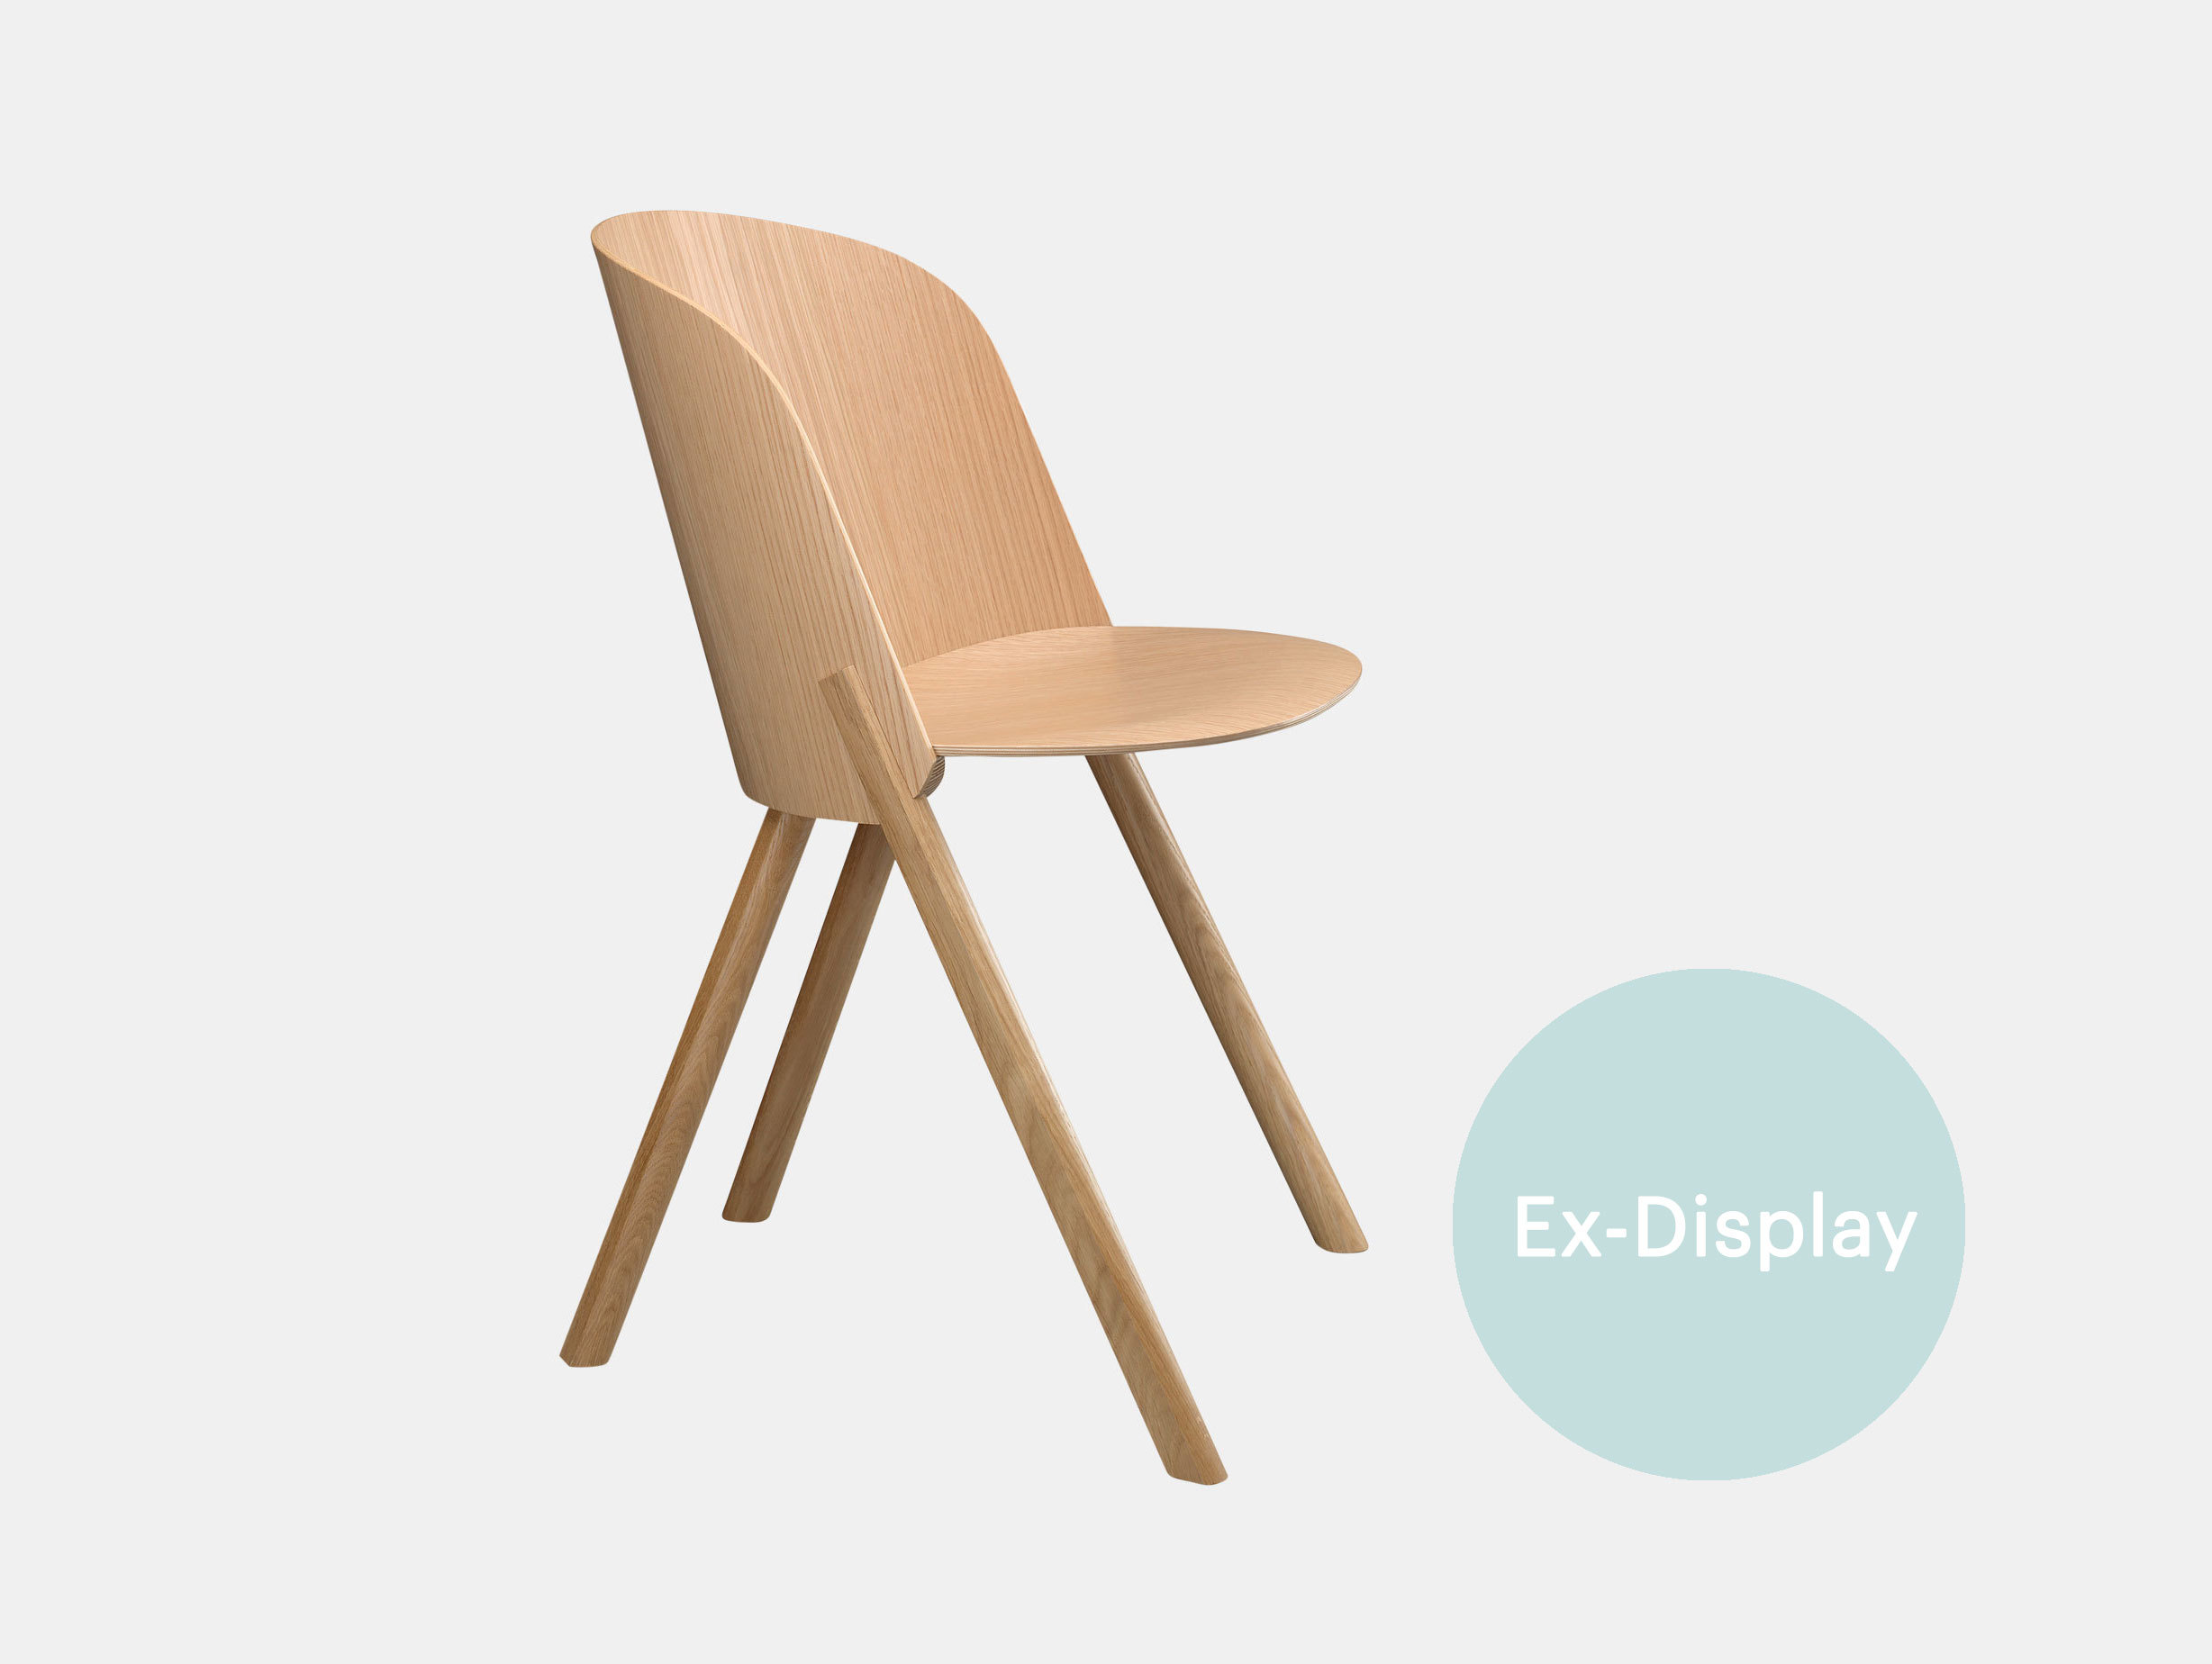 This Chair / 45% off in our Summer Sale at £195 image 2